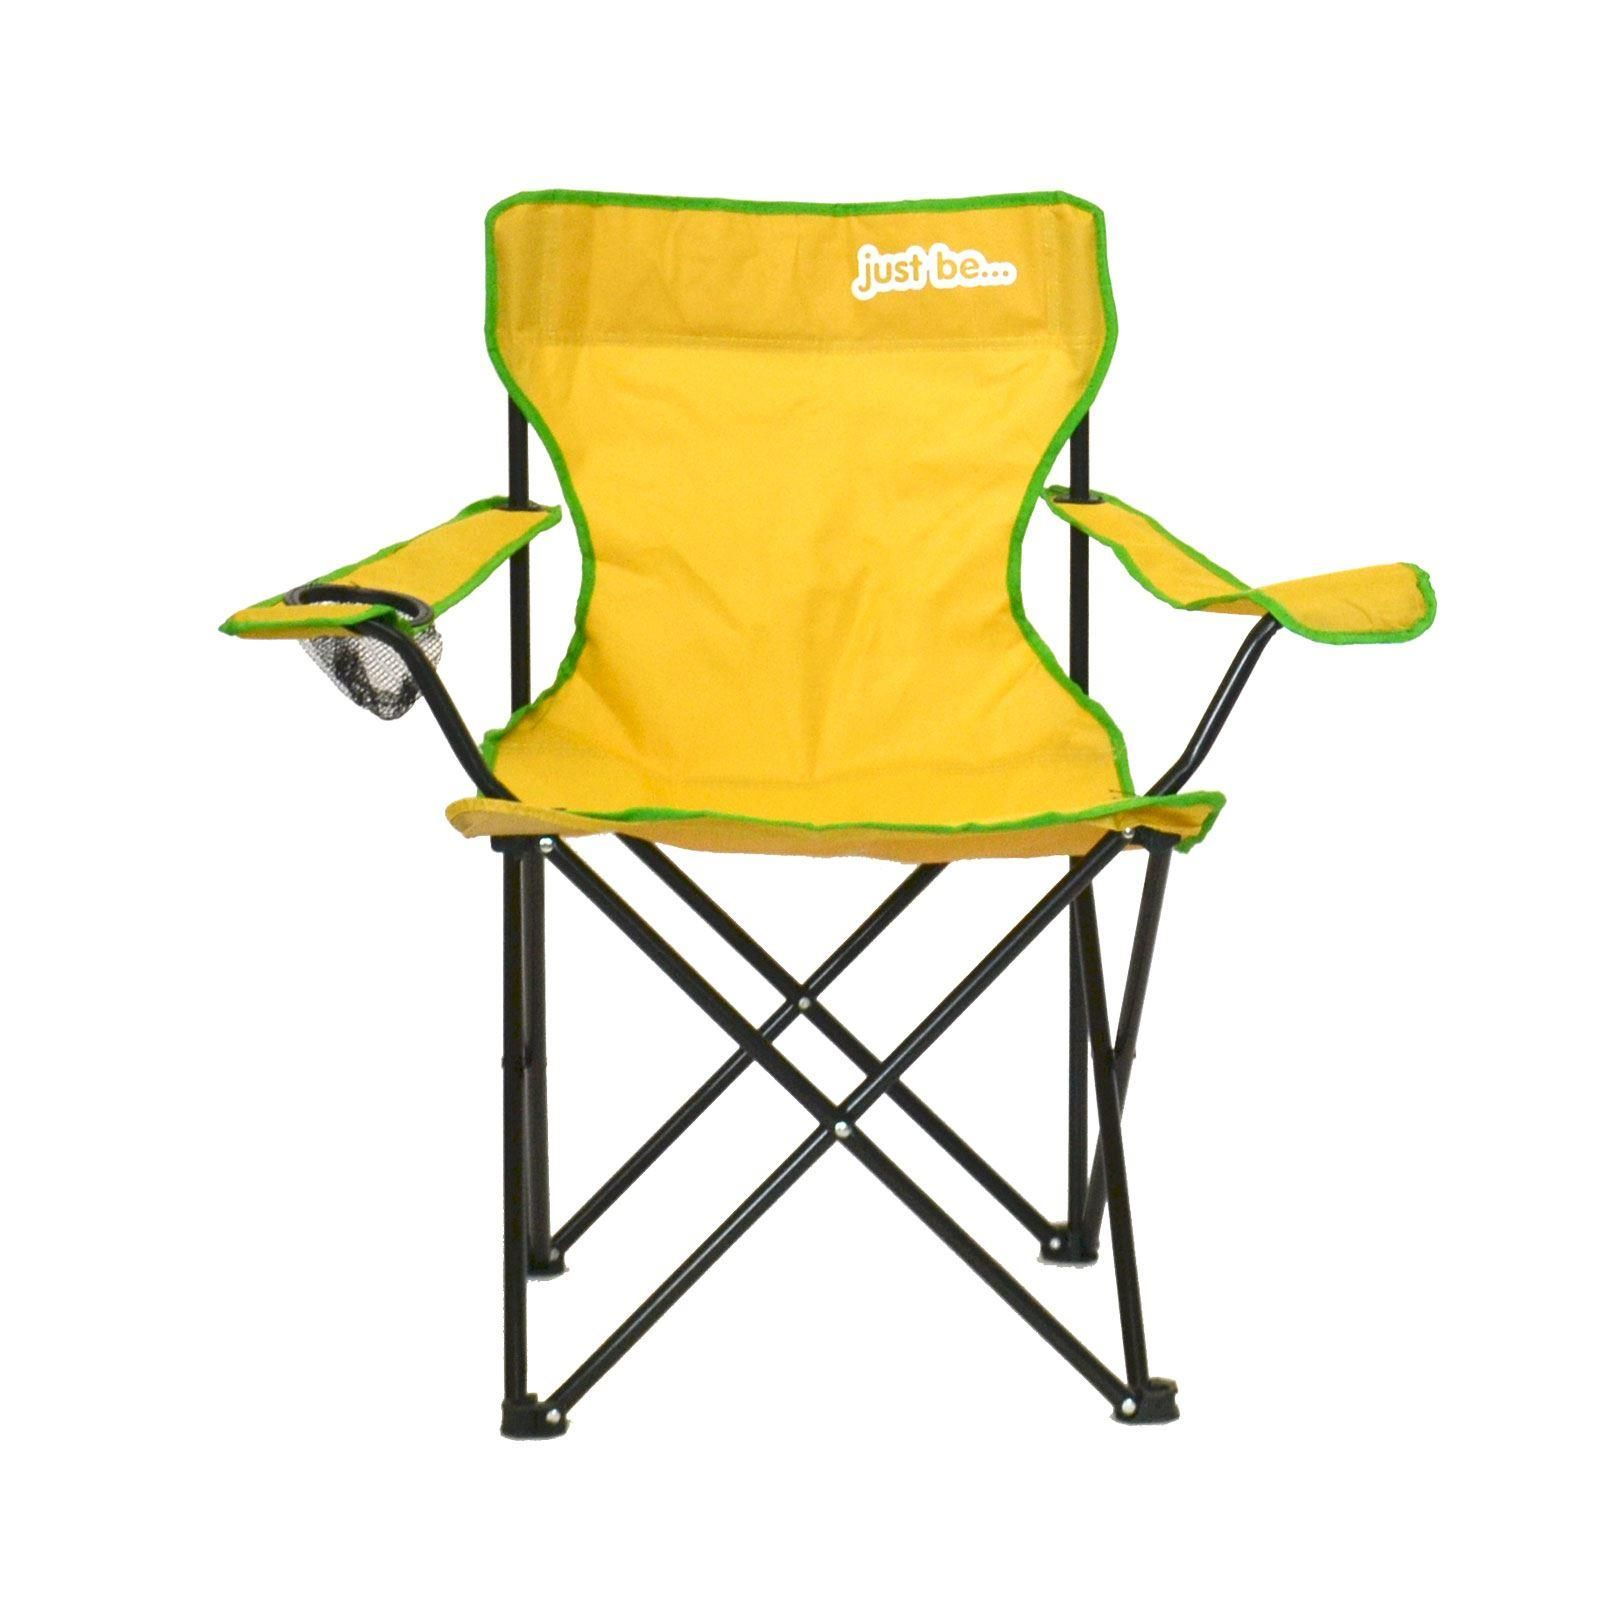 just be Yellow Folding Camping Chair Green Trim